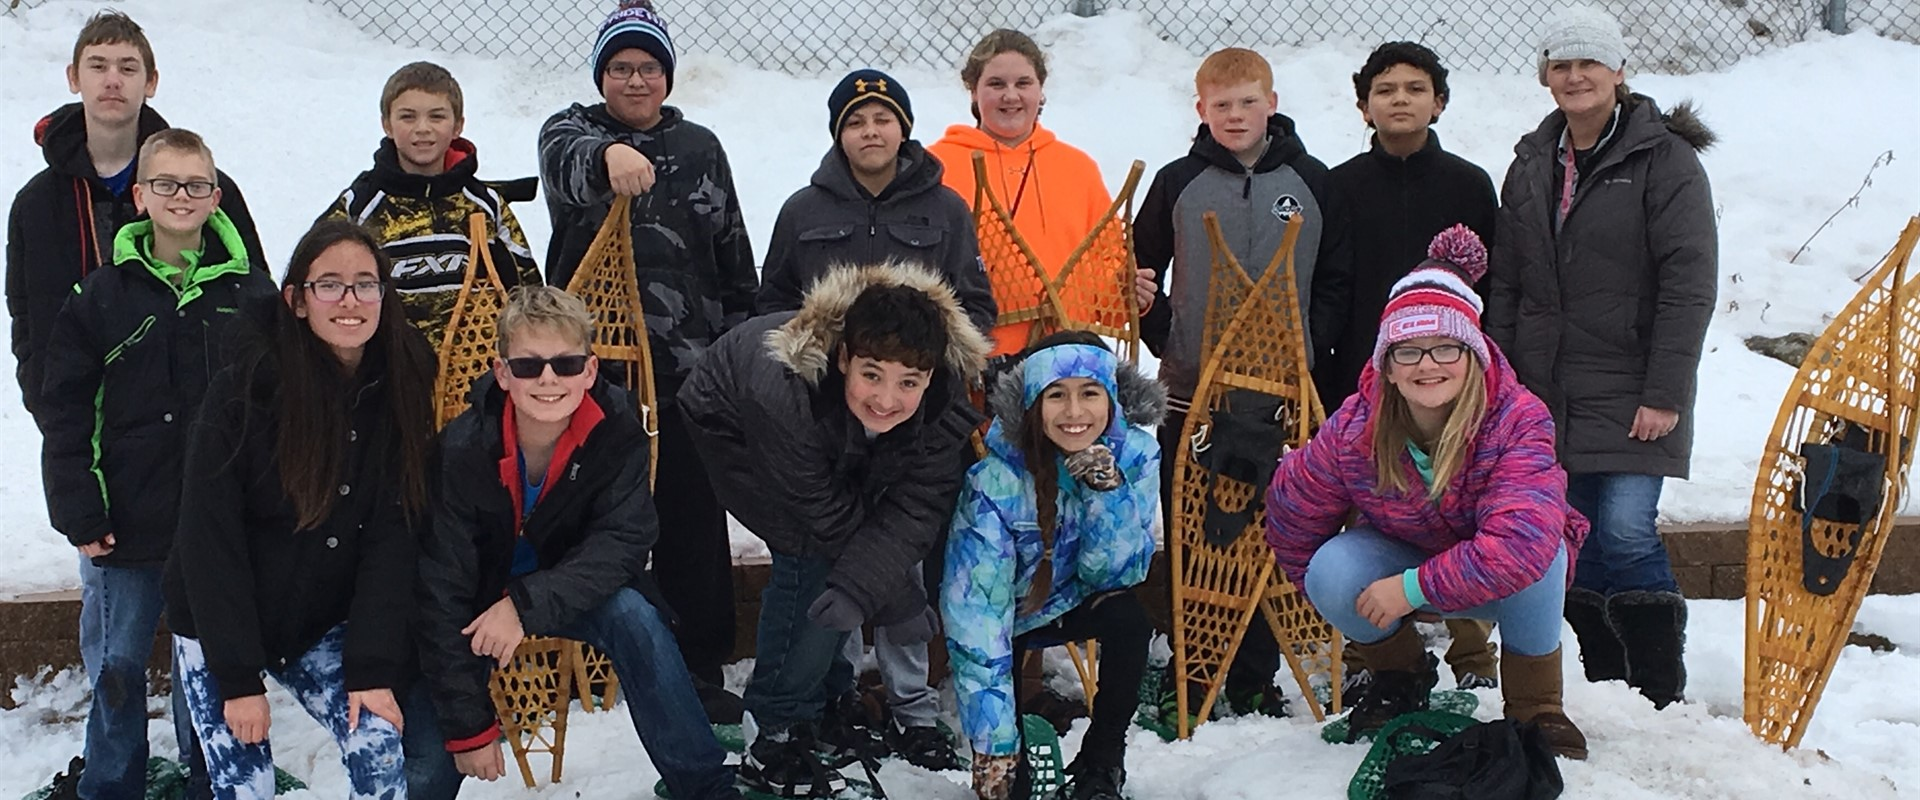 Mrs. Hinz's 6th grade Science class spent the warm day in snow shoes!